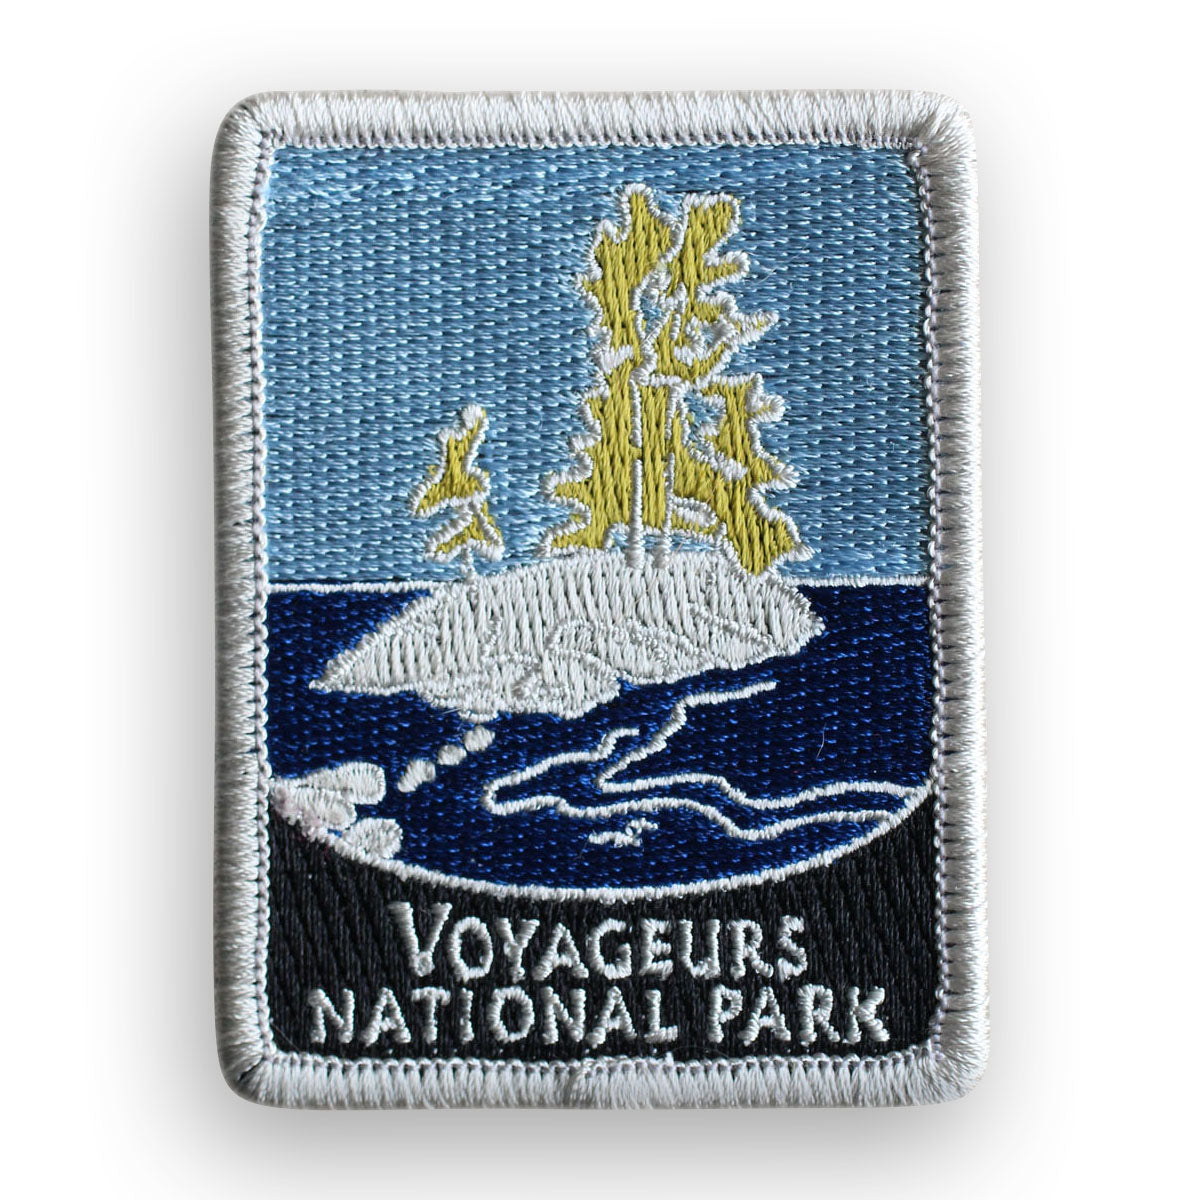 Voyageurs National Park Patch